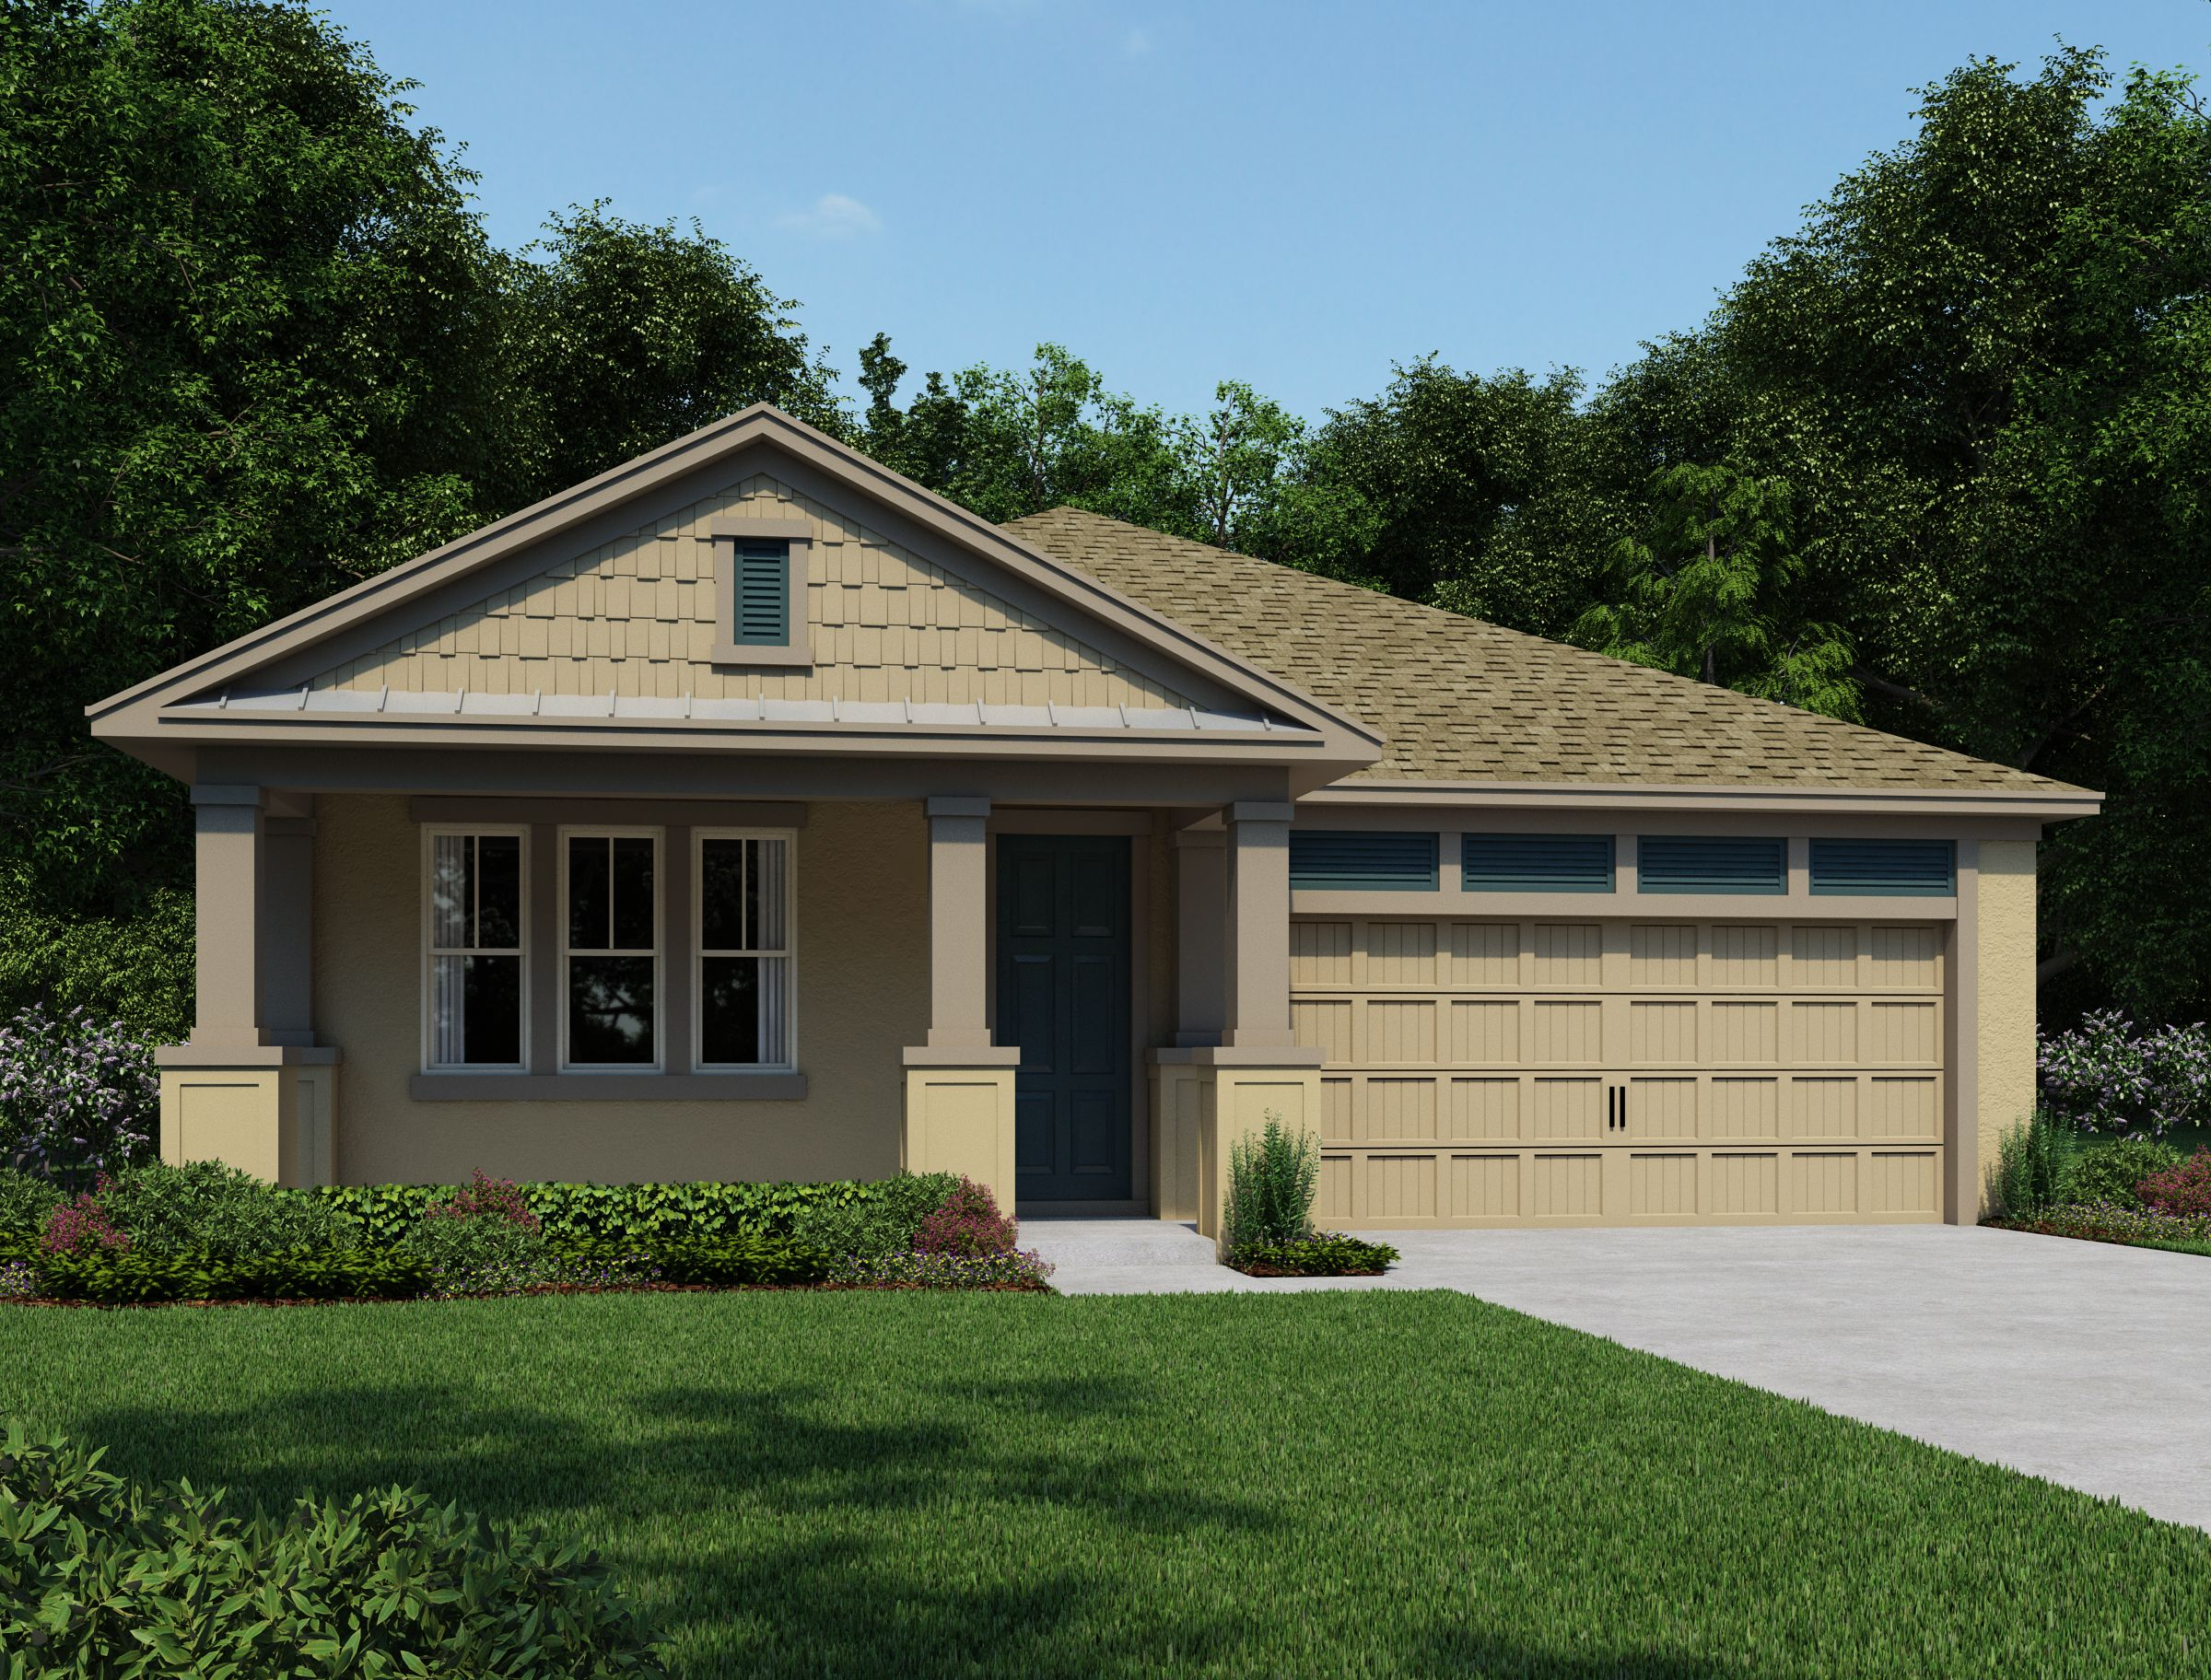 Ashton woods homes palmer park barbosa 1293377 sarasota for Palmers homes